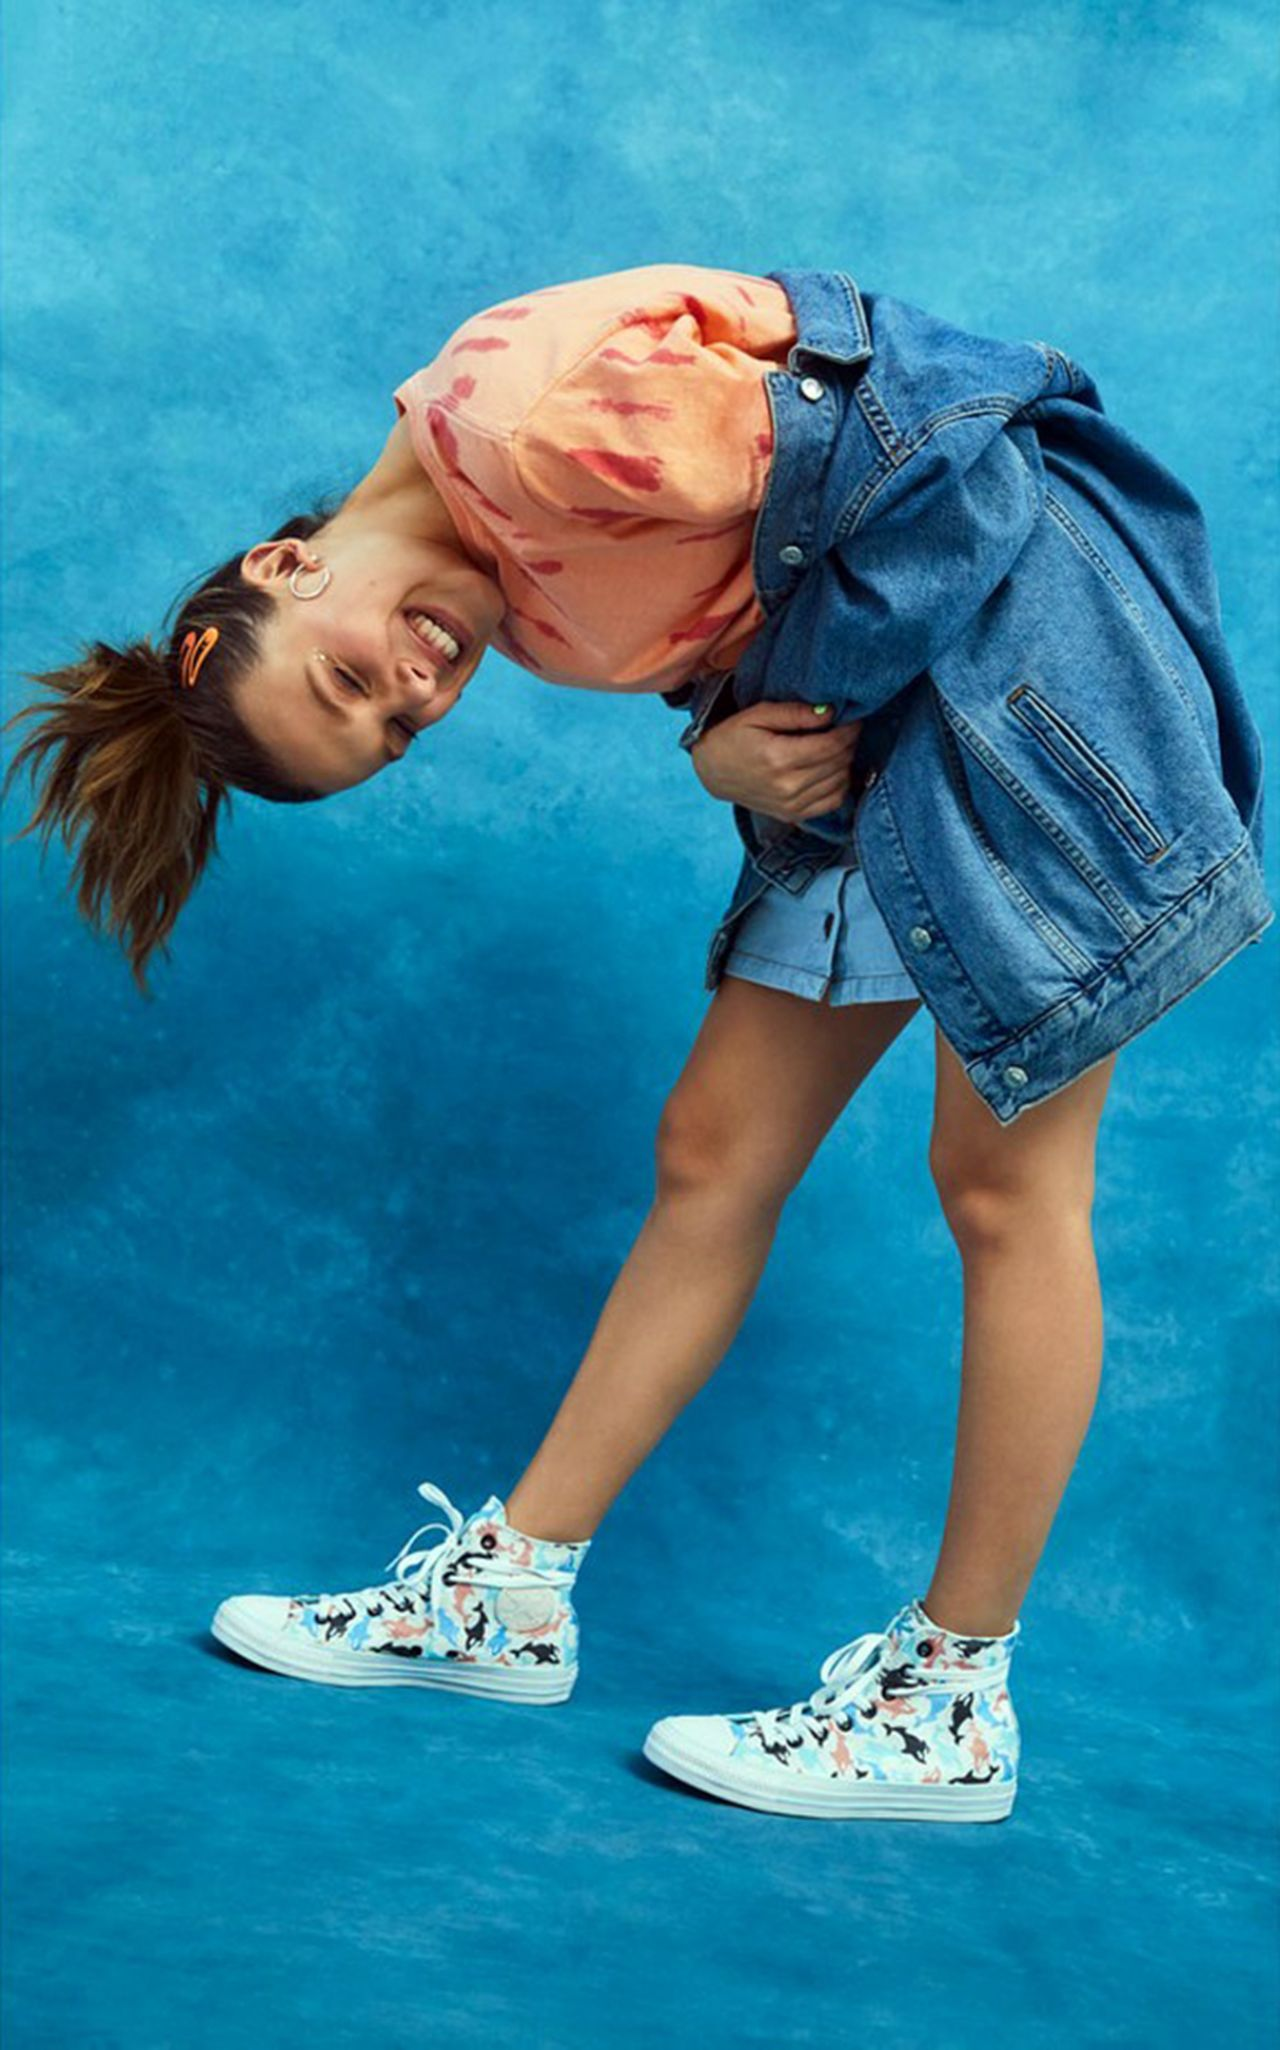 Millie Bobby Brown Photoshoot For Converse 07 08 2019 Celebrity Milliebobbybrown Photos Photoshoot Pics Private M Millie Bobby Brown Bobby Brown Millie